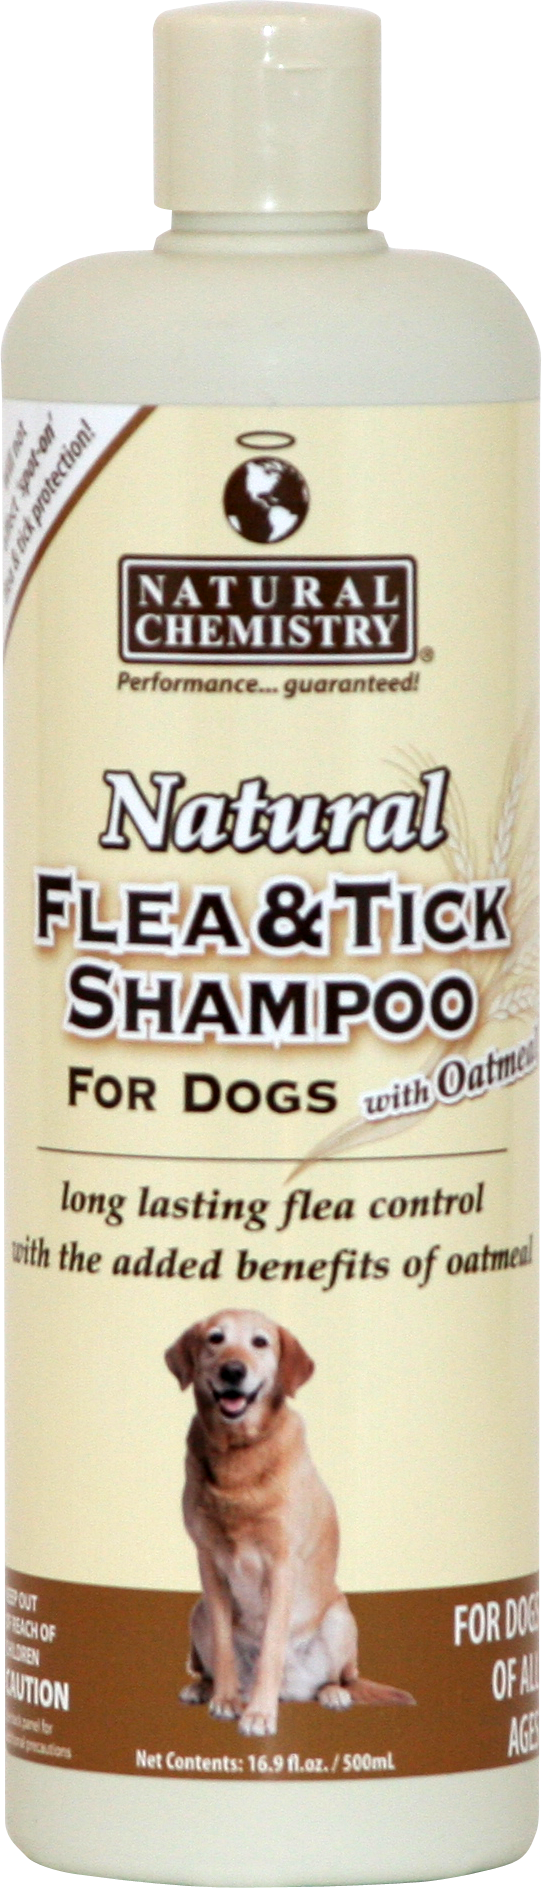 11205 Natural Flea & Tick Shampoo with Oatmeal.png